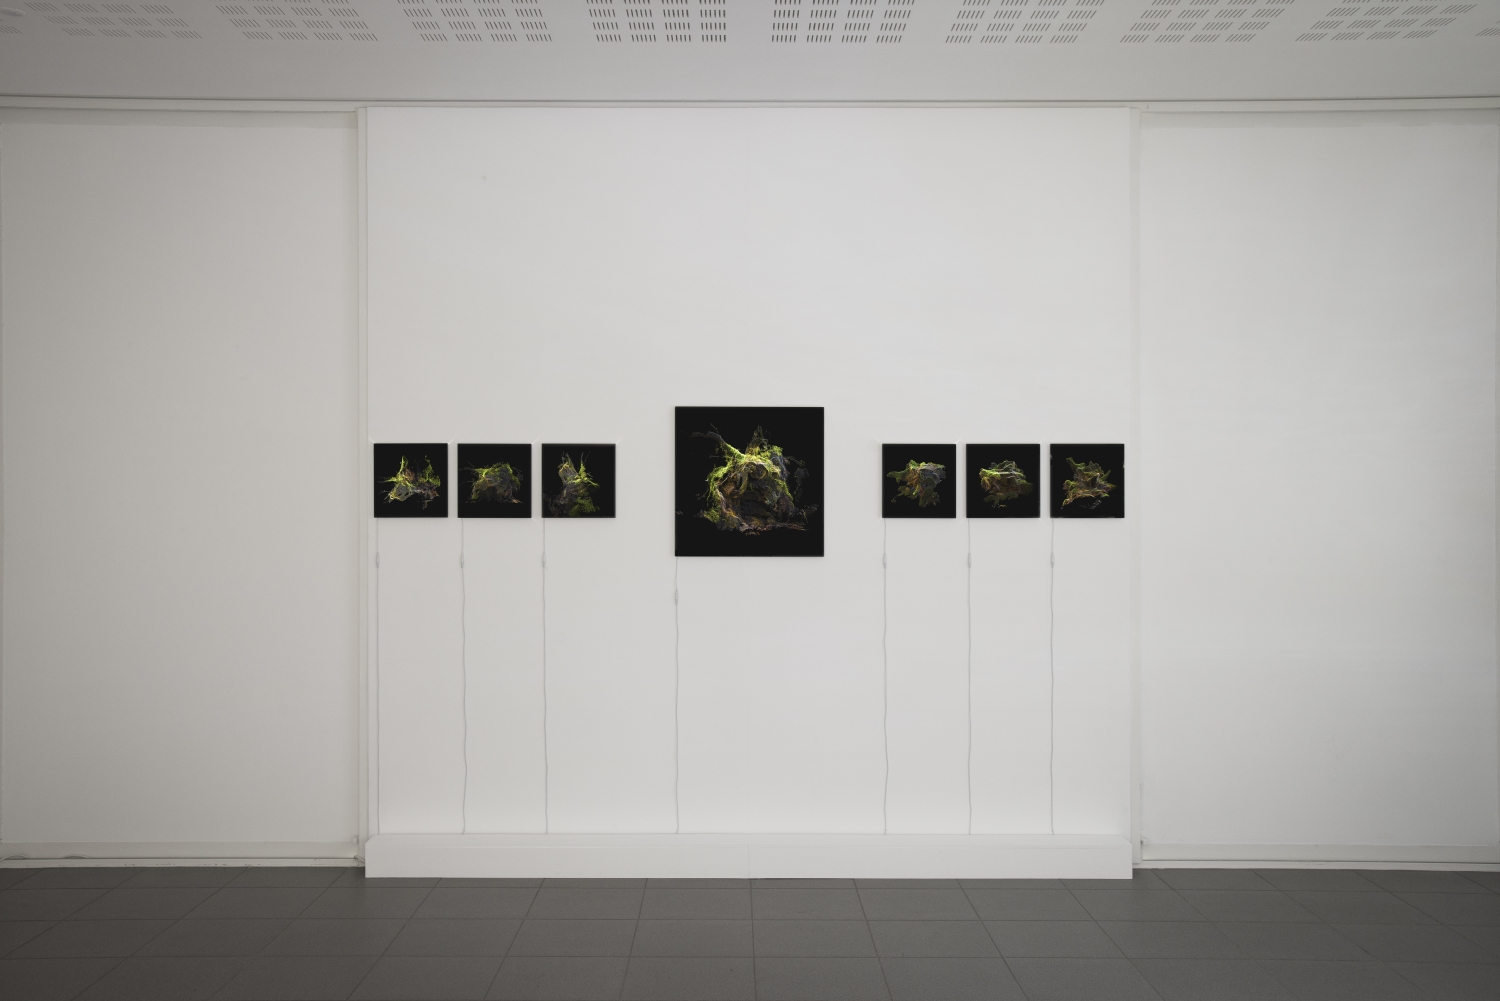 Vue de l'exposition Paul Duncombe, Microcosmes, 2017. Photo : Paul Duncombe